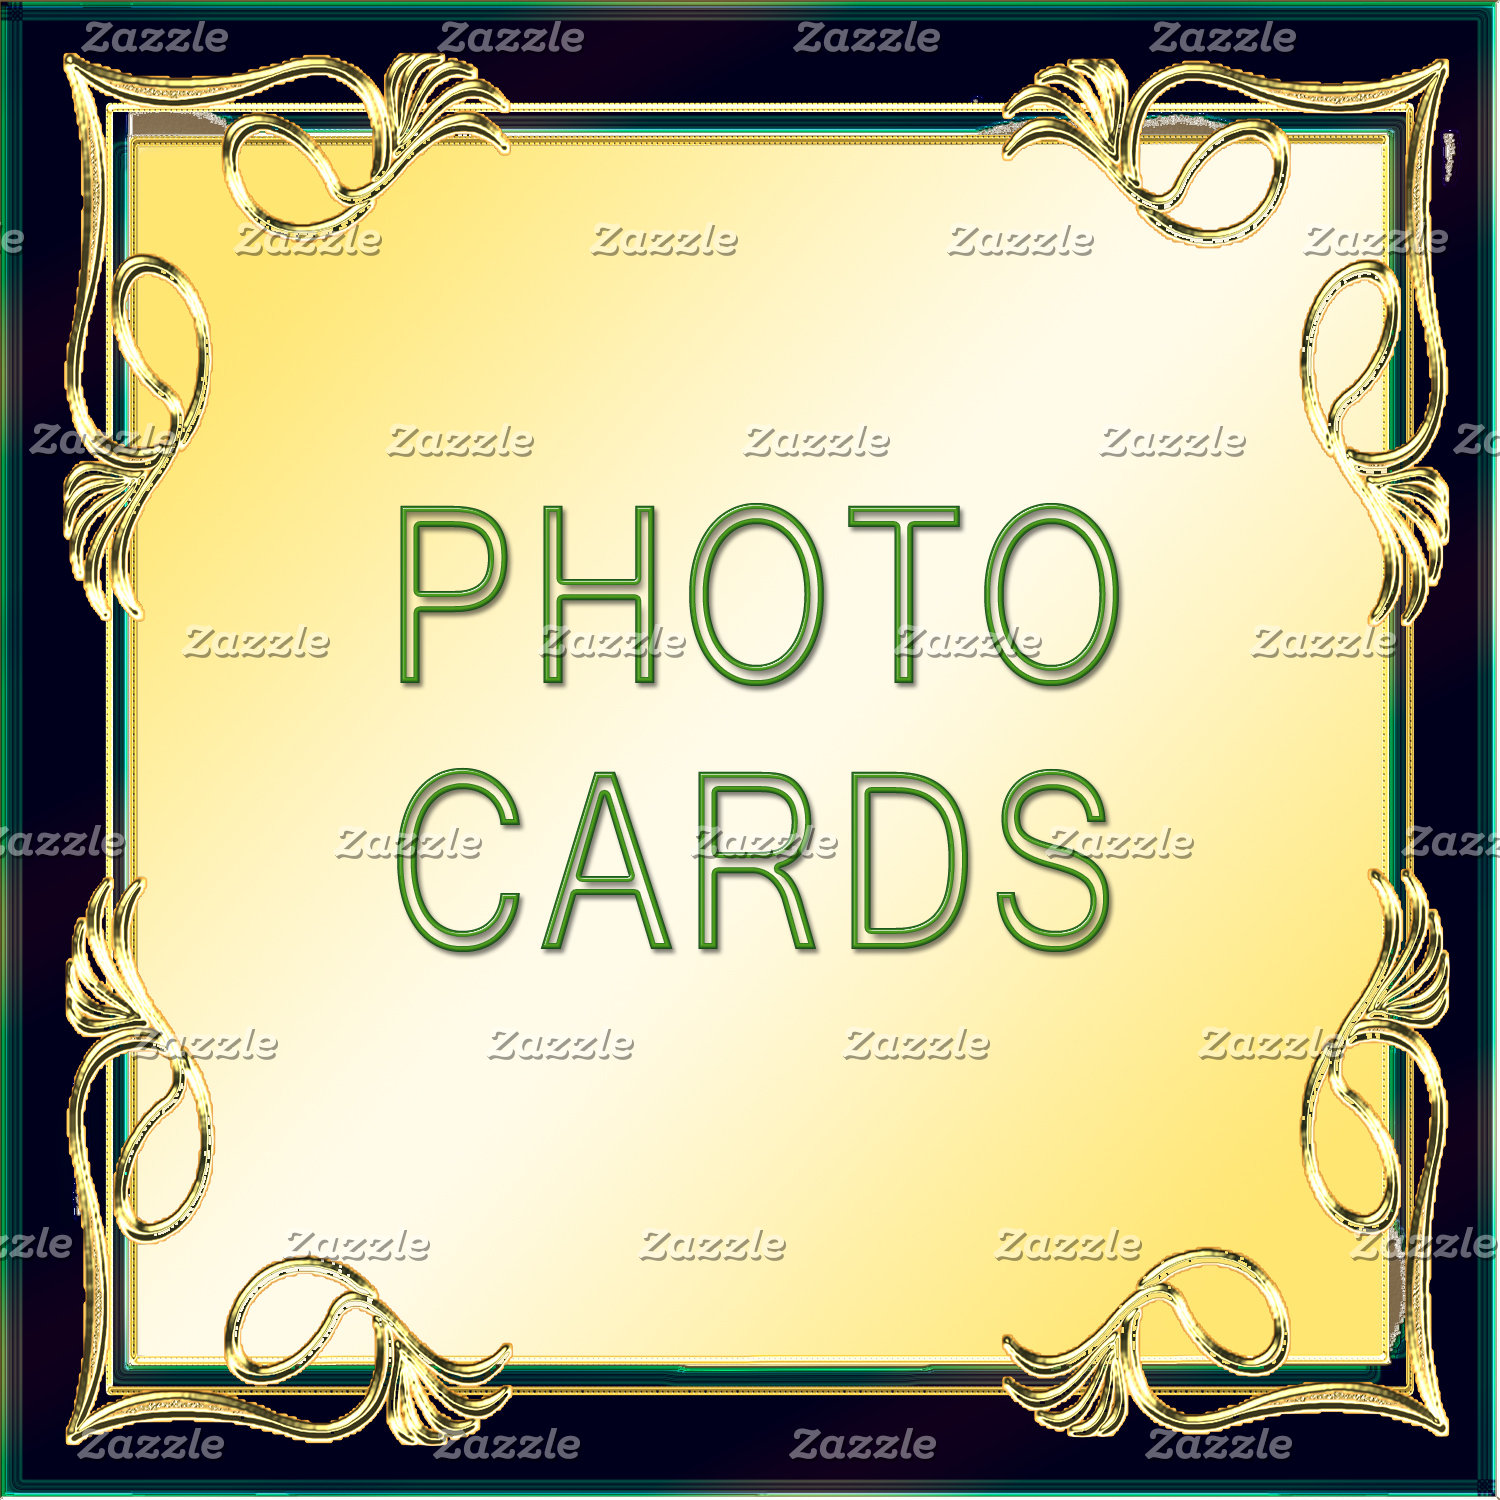 Photo cards